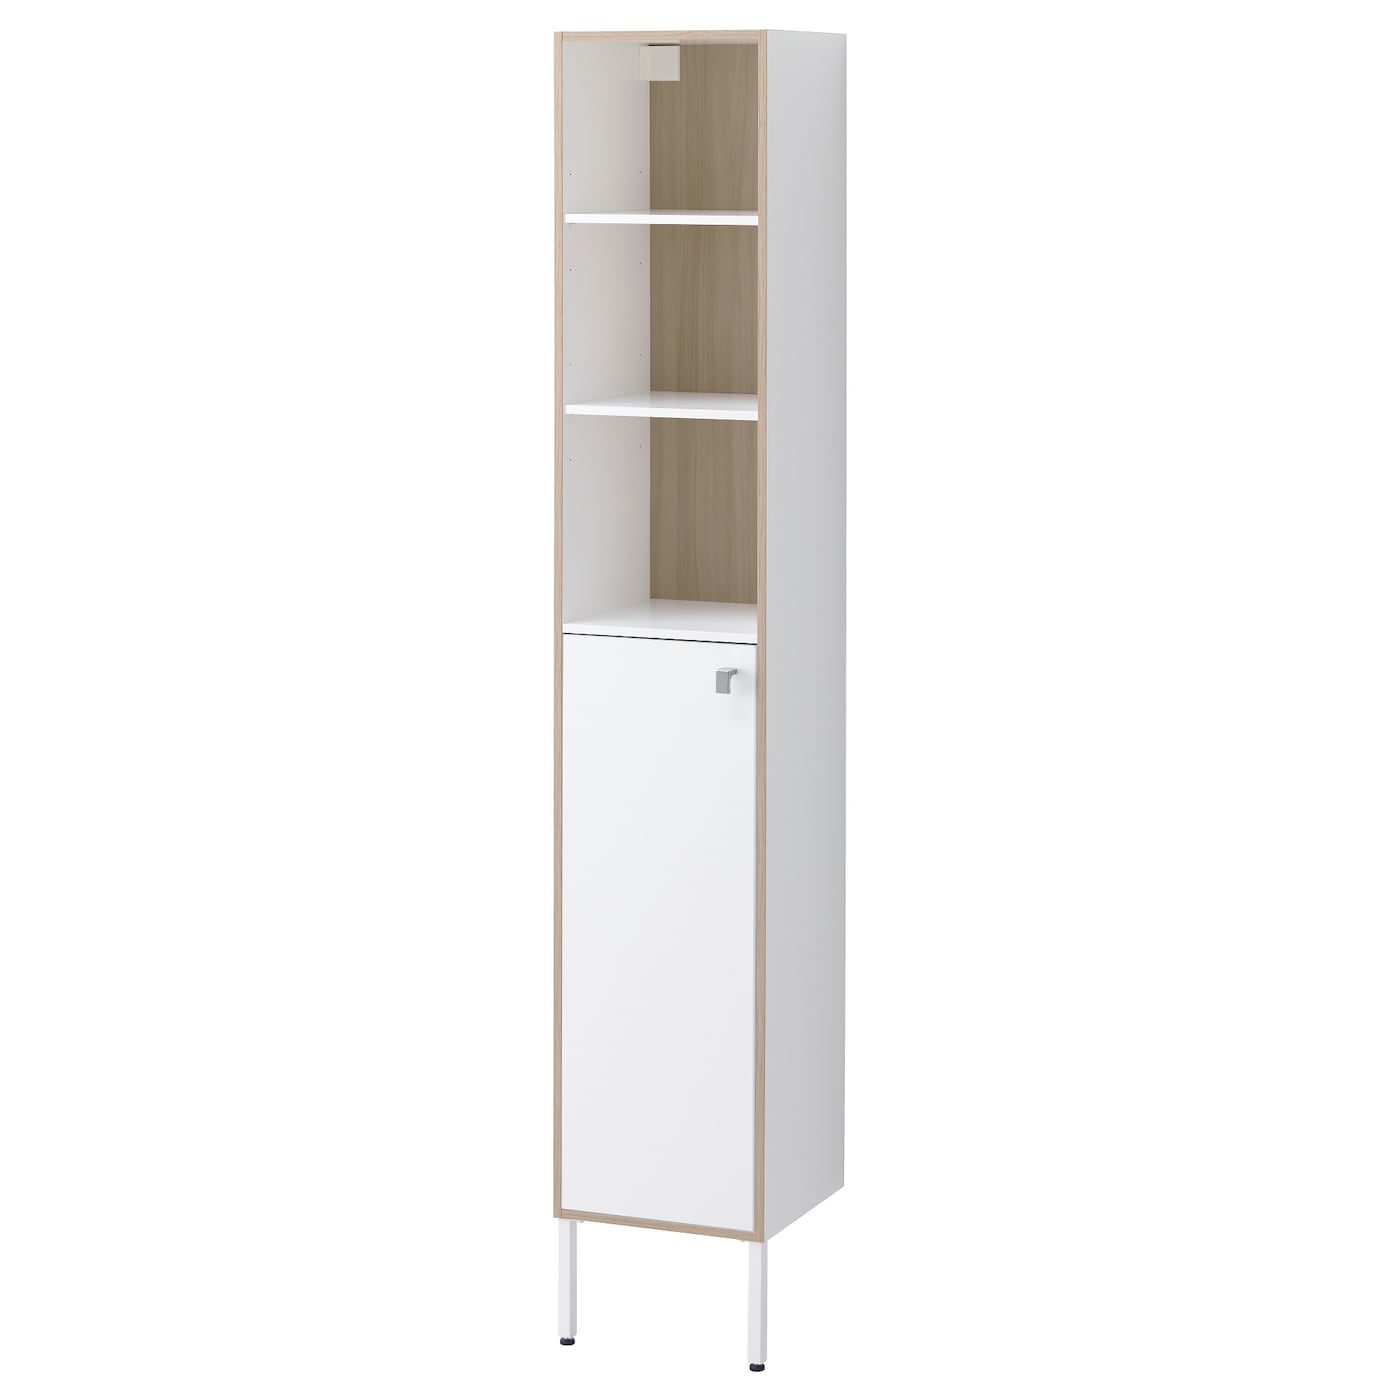 Bathroom cabinets tall bathroom cabinets ikea for Armoire a balai conforama